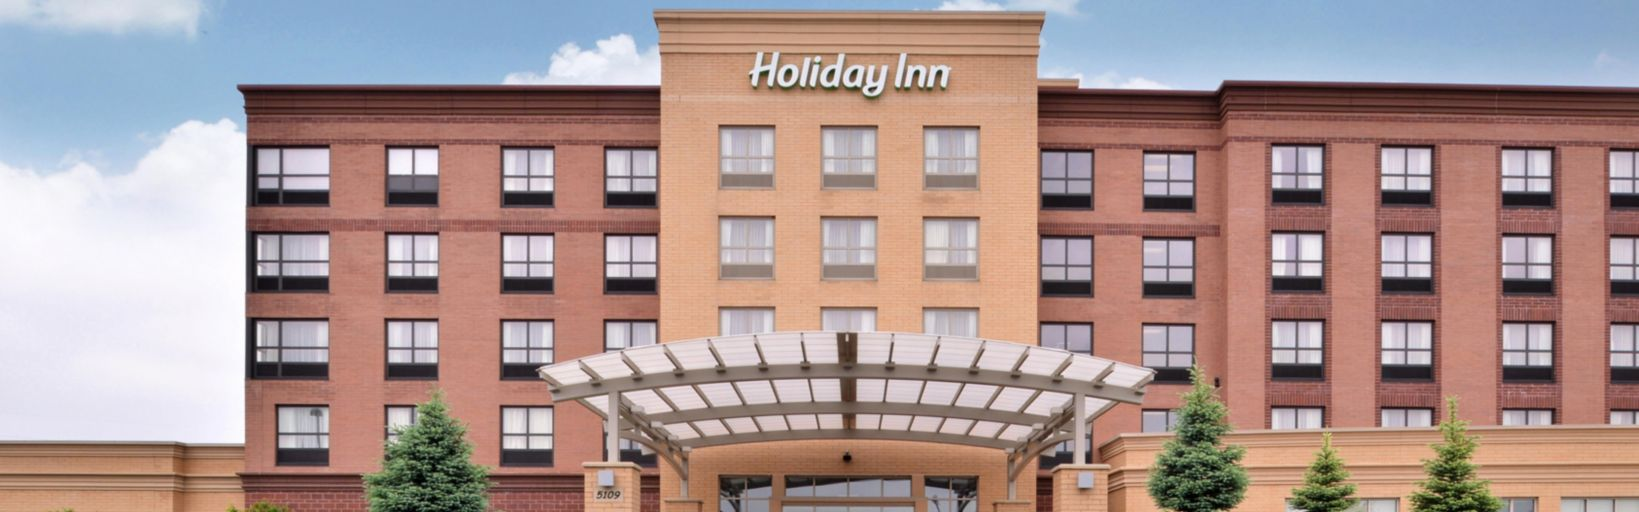 Holiday Inn Madison At The American Center Hotel By Ihg